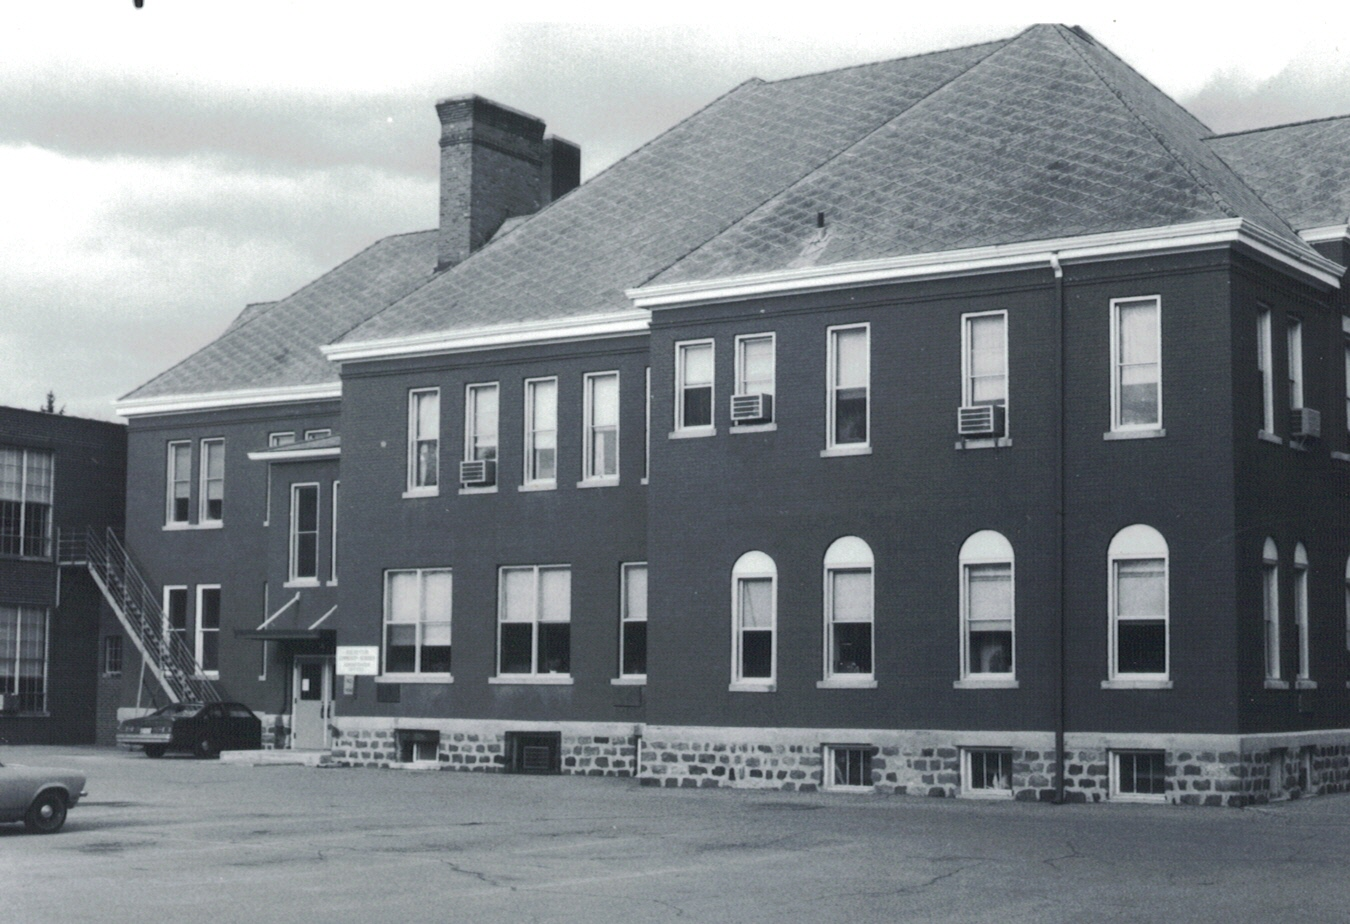 Harrison School Building, west elevation, 1978